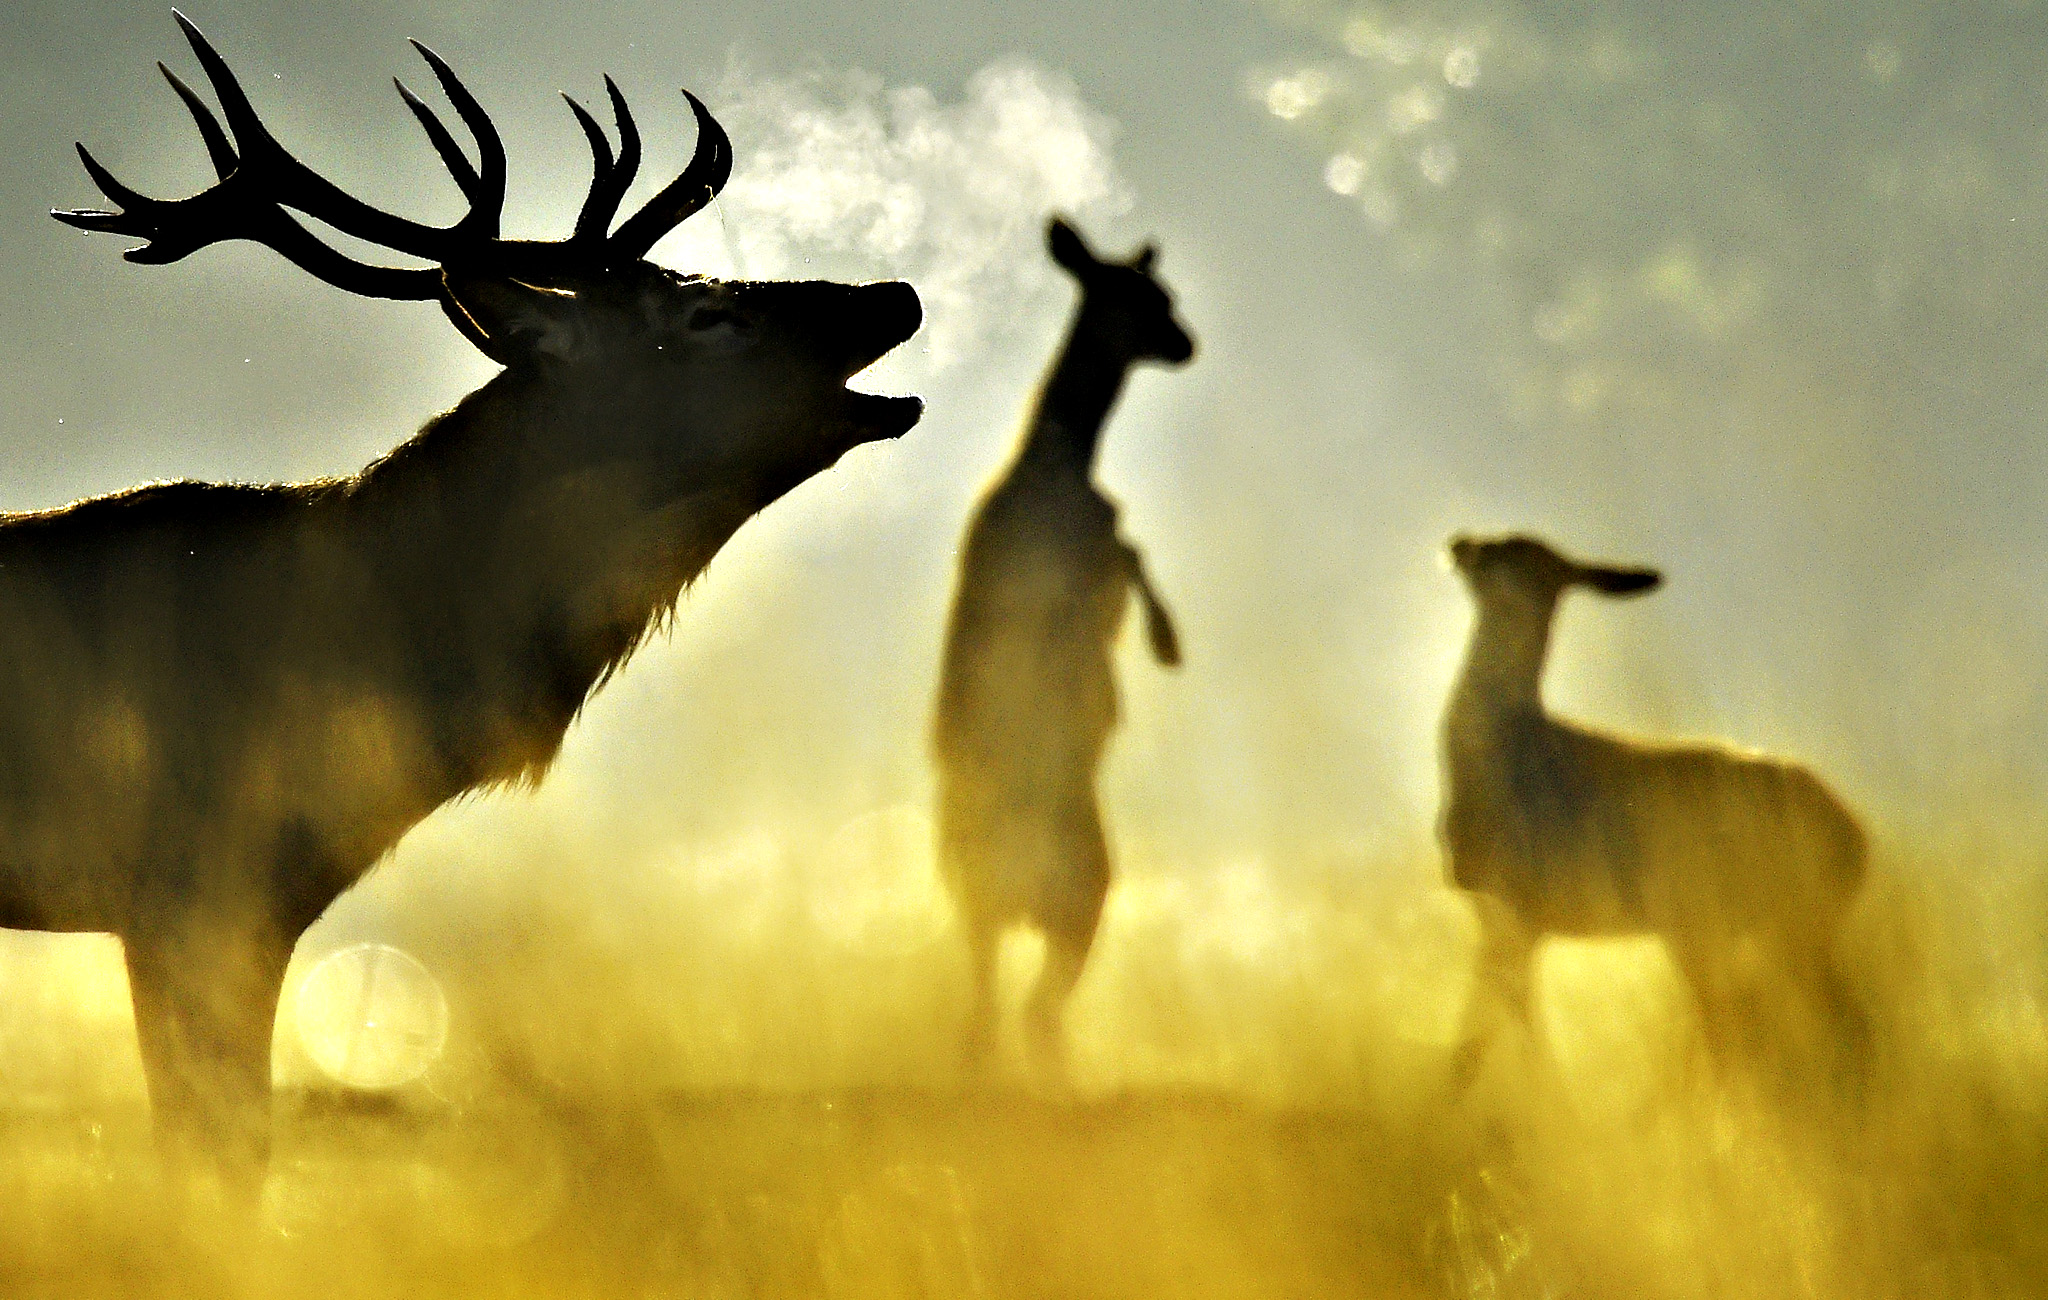 A Red deer stag barks, with females seen behind, in the morning sun in Richmond Park in west London, Britain, October 2, 2015. The Royal Park has had Red and Fallow deer present since 1529, and early autumn sees the rutting or breeding season begin amongst the herd of over six hundred animals.